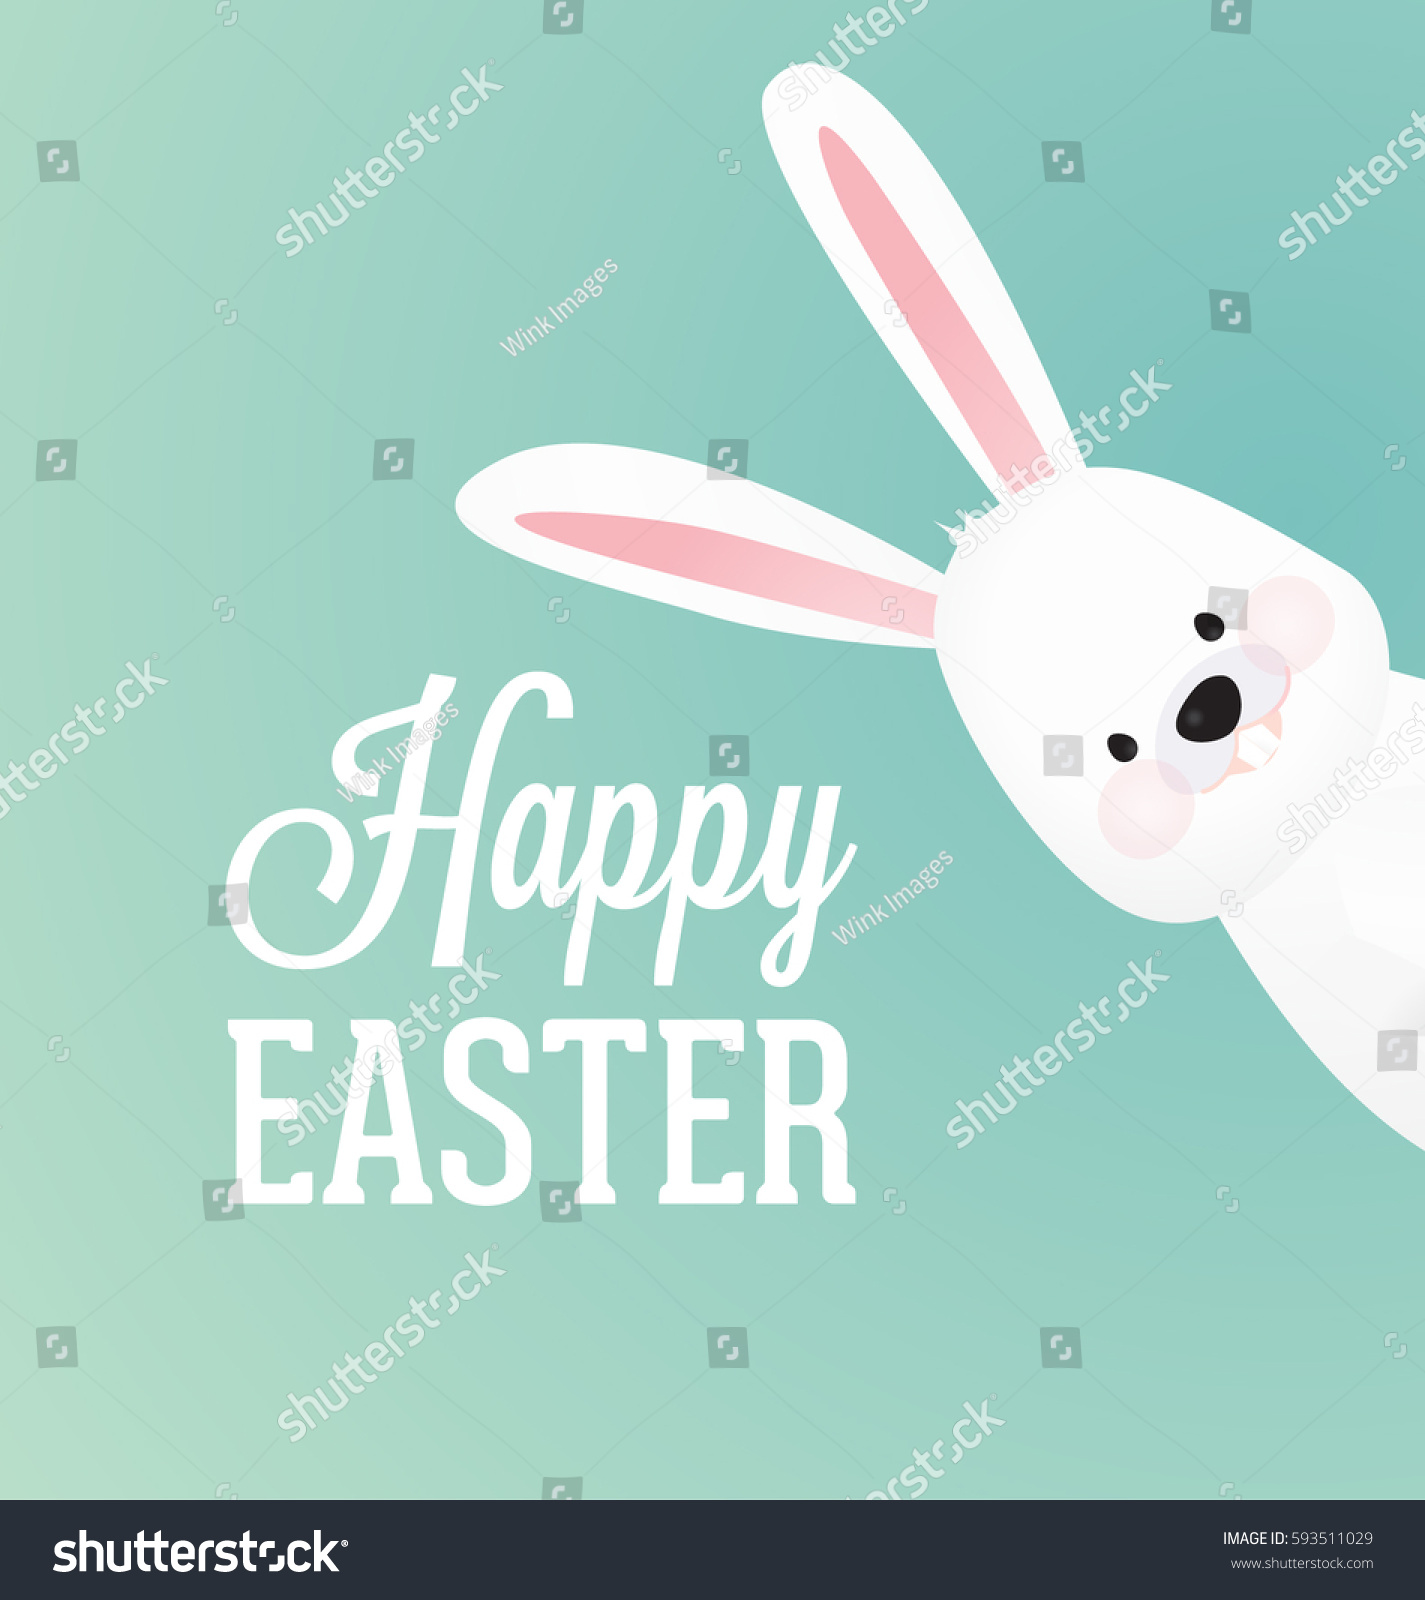 Happy Easter Vector Design With Cute Rabbit Character - Advertising Poster  Or Flyer Template With A